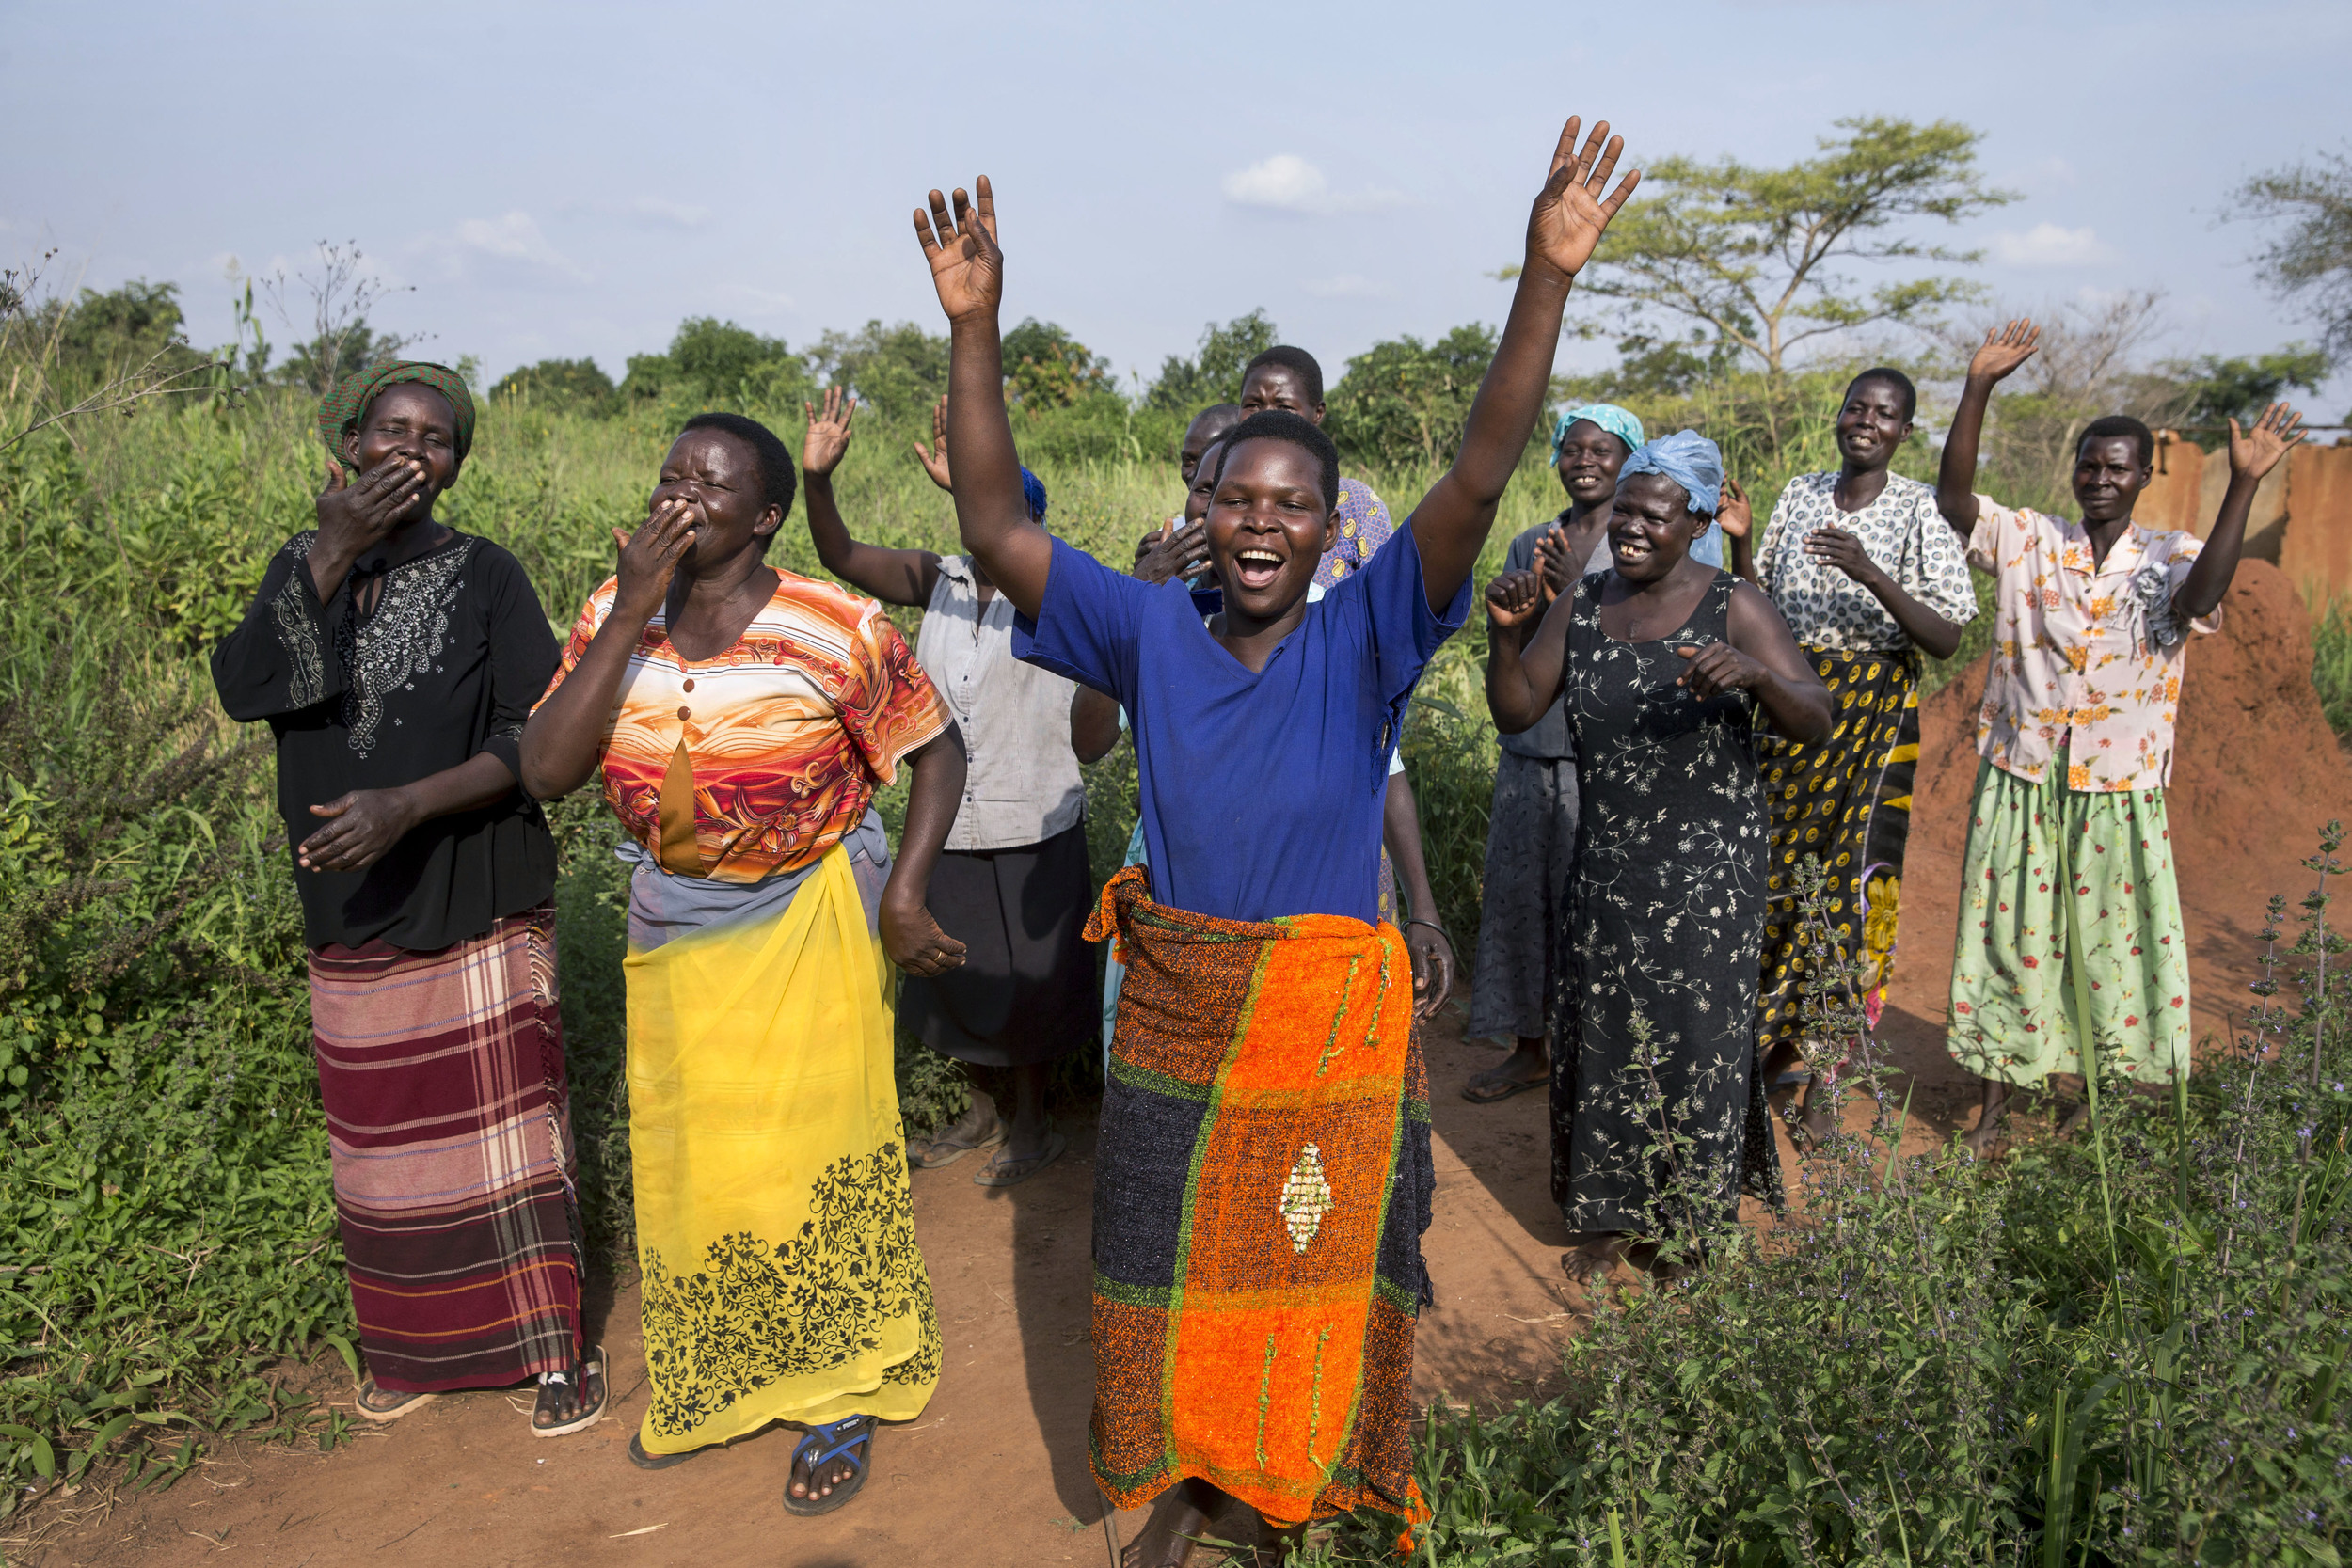 Women from the Self Help Group Alita Kole in Ayala, Uganda